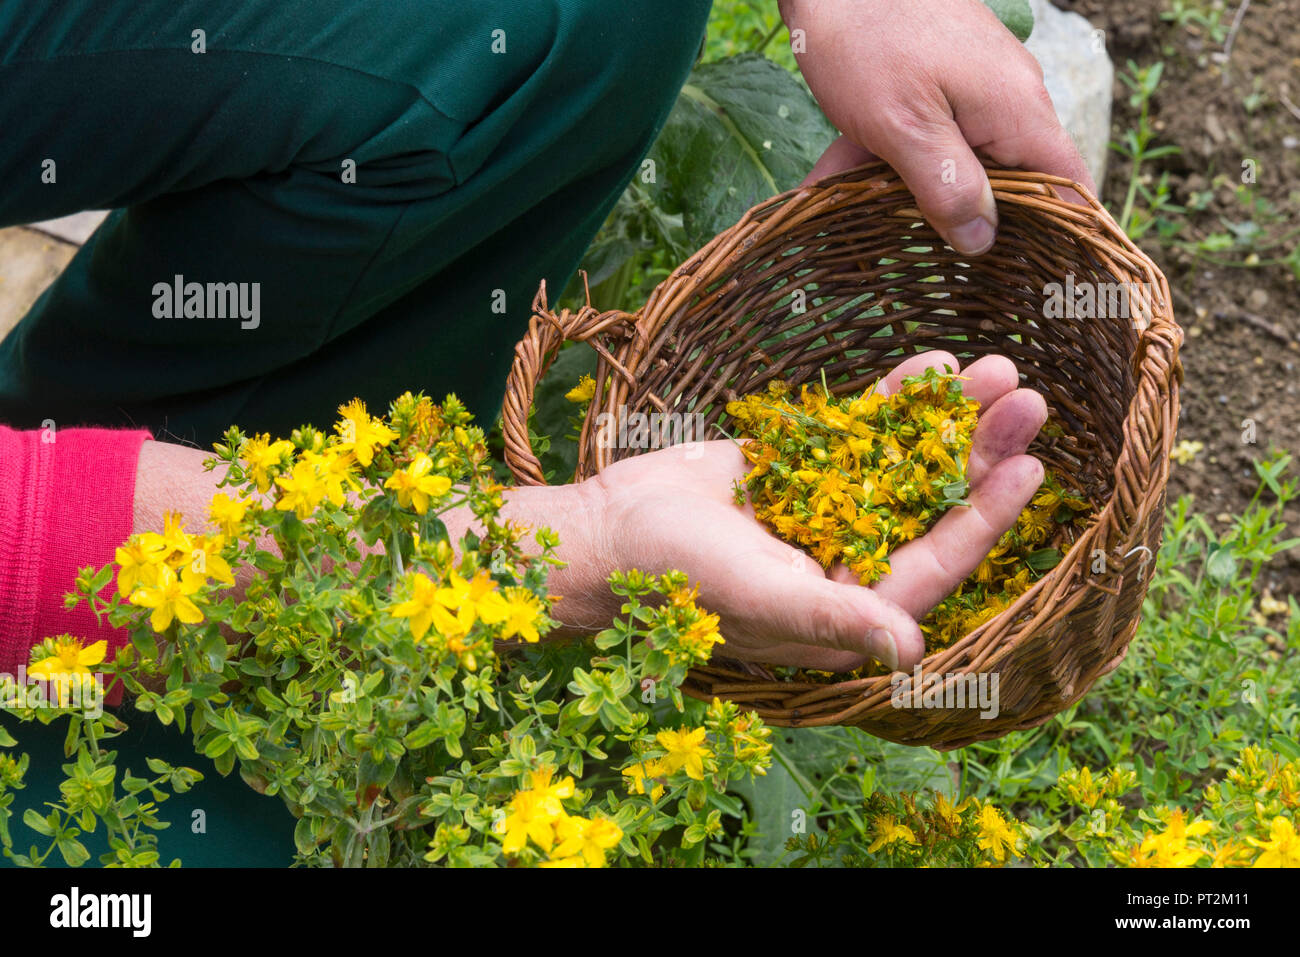 Switzerland, canton Valais, district Leuk, Albinen, medicinal plant garden, book author and herbal expert Thomas Pfister, medicinal herb school, herbal walk, medicinal herbs, herbal class, man holding a basket with herbs in hand, herbs in the palm of his hand - Stock Image